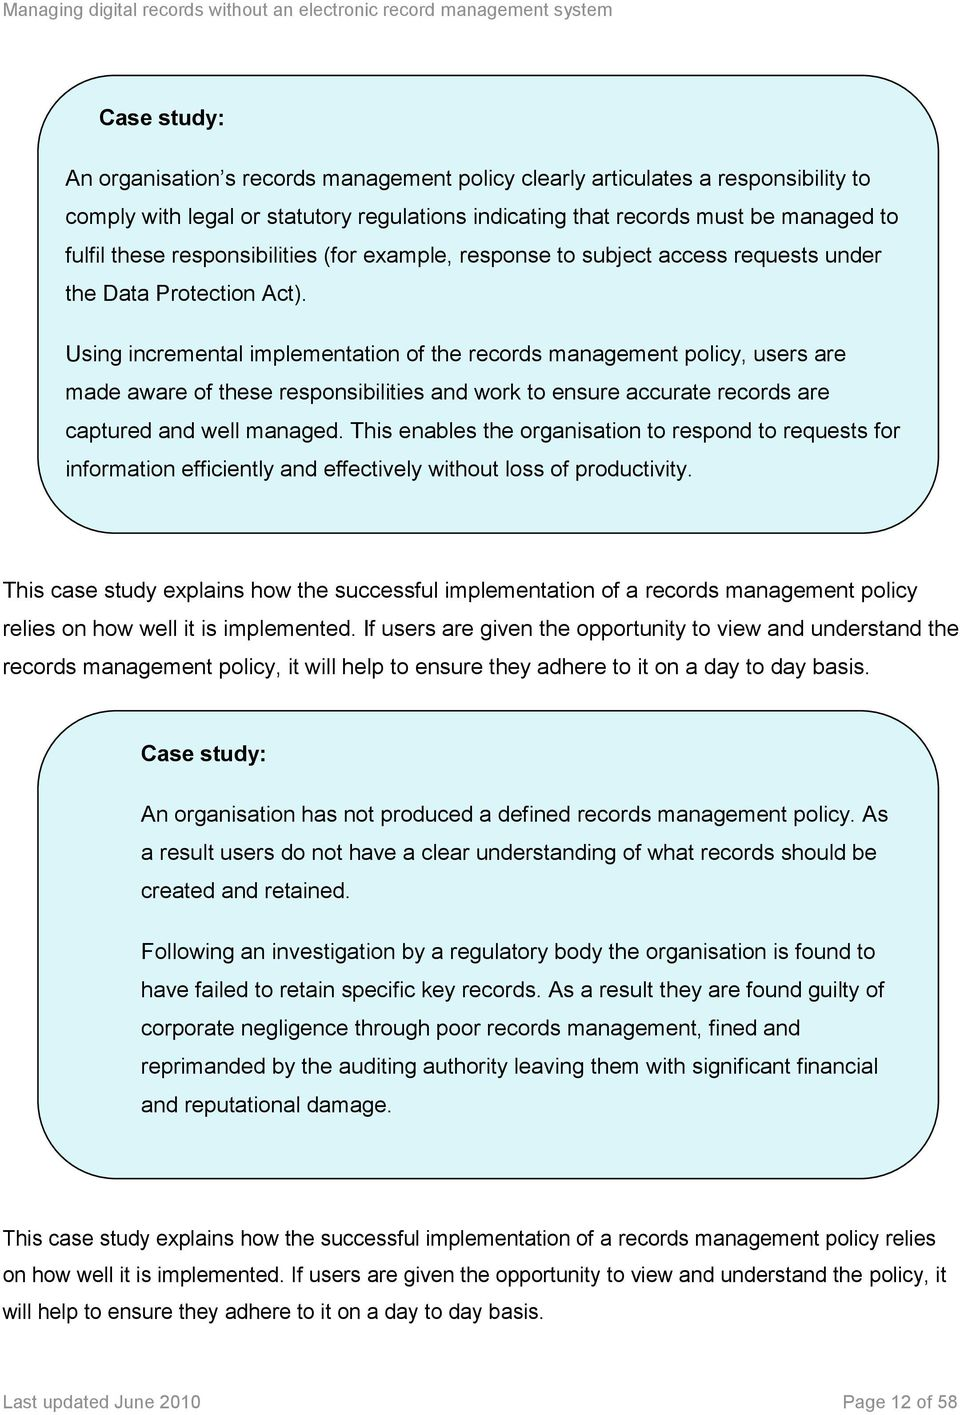 Using incremental implementation of the records management policy, users are made aware of these responsibilities and work to ensure accurate records are captured and well managed.